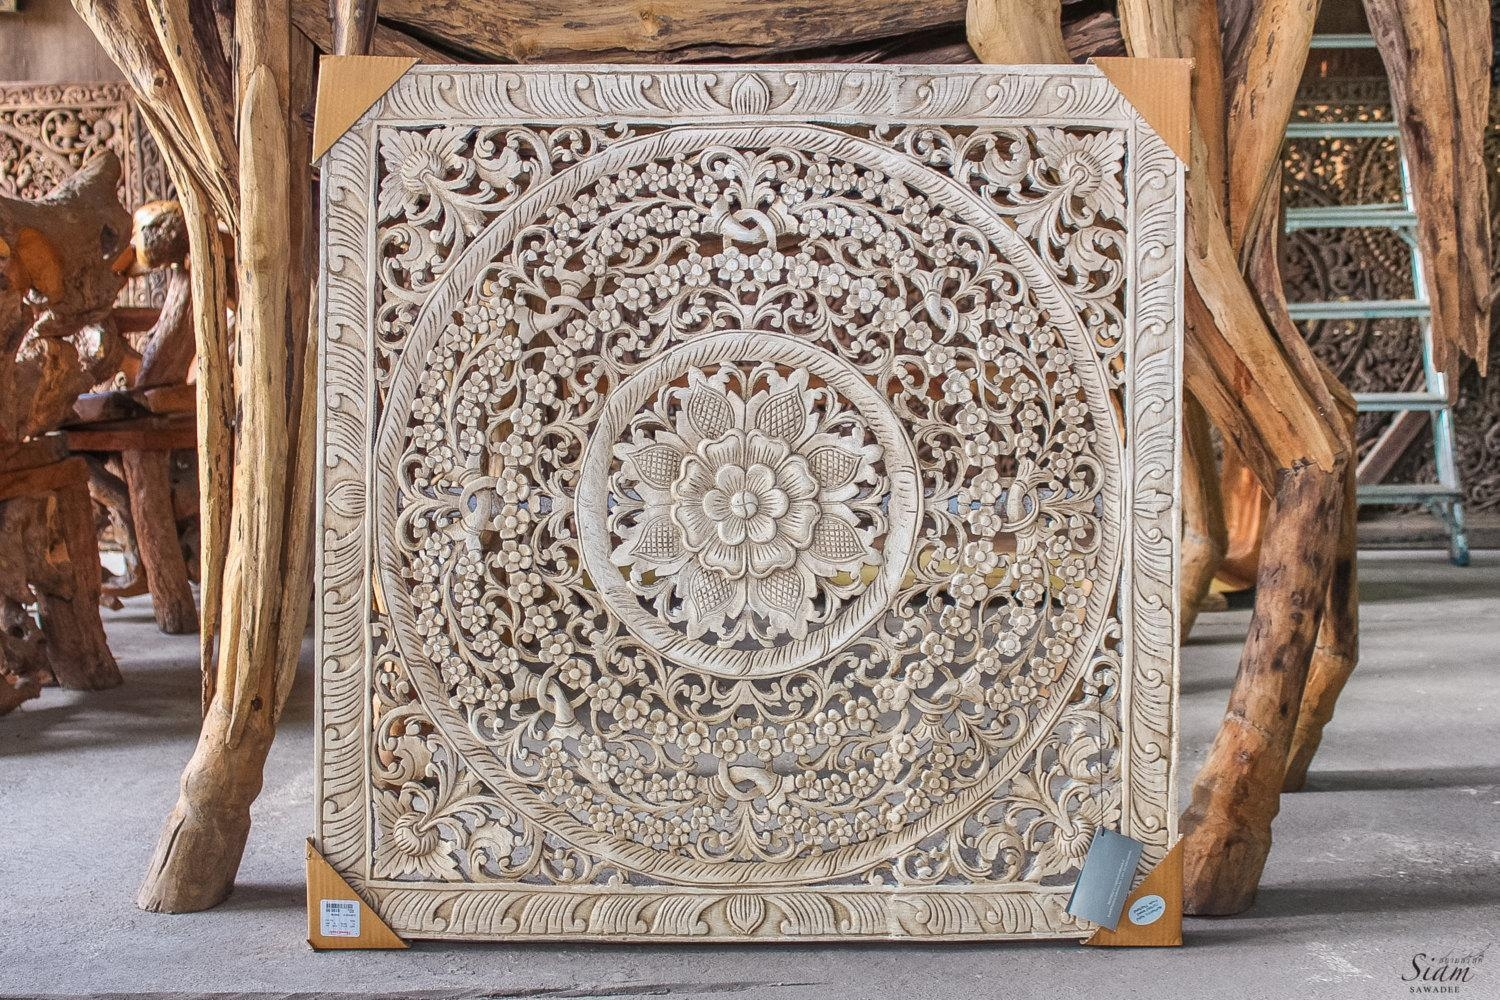 Carved Wood Wall Art New Picture Carved Wood Wall Decor – Home With Balinese Wall Art (Image 11 of 20)